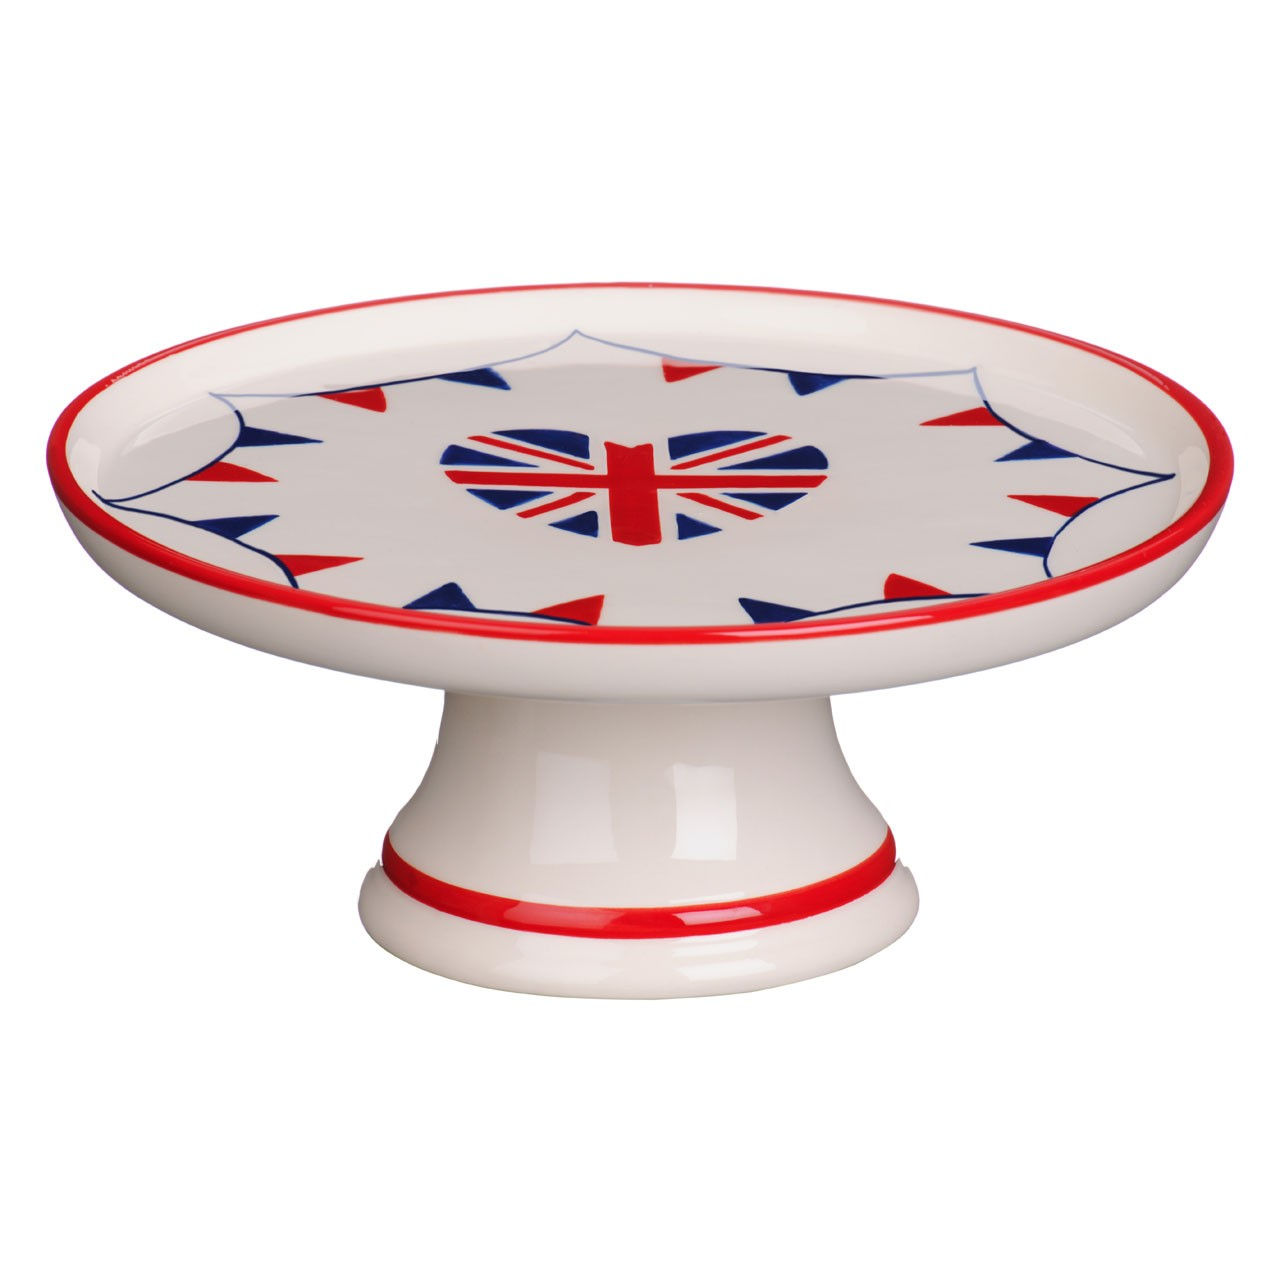 I Love UK Cake Stand, Dolomite